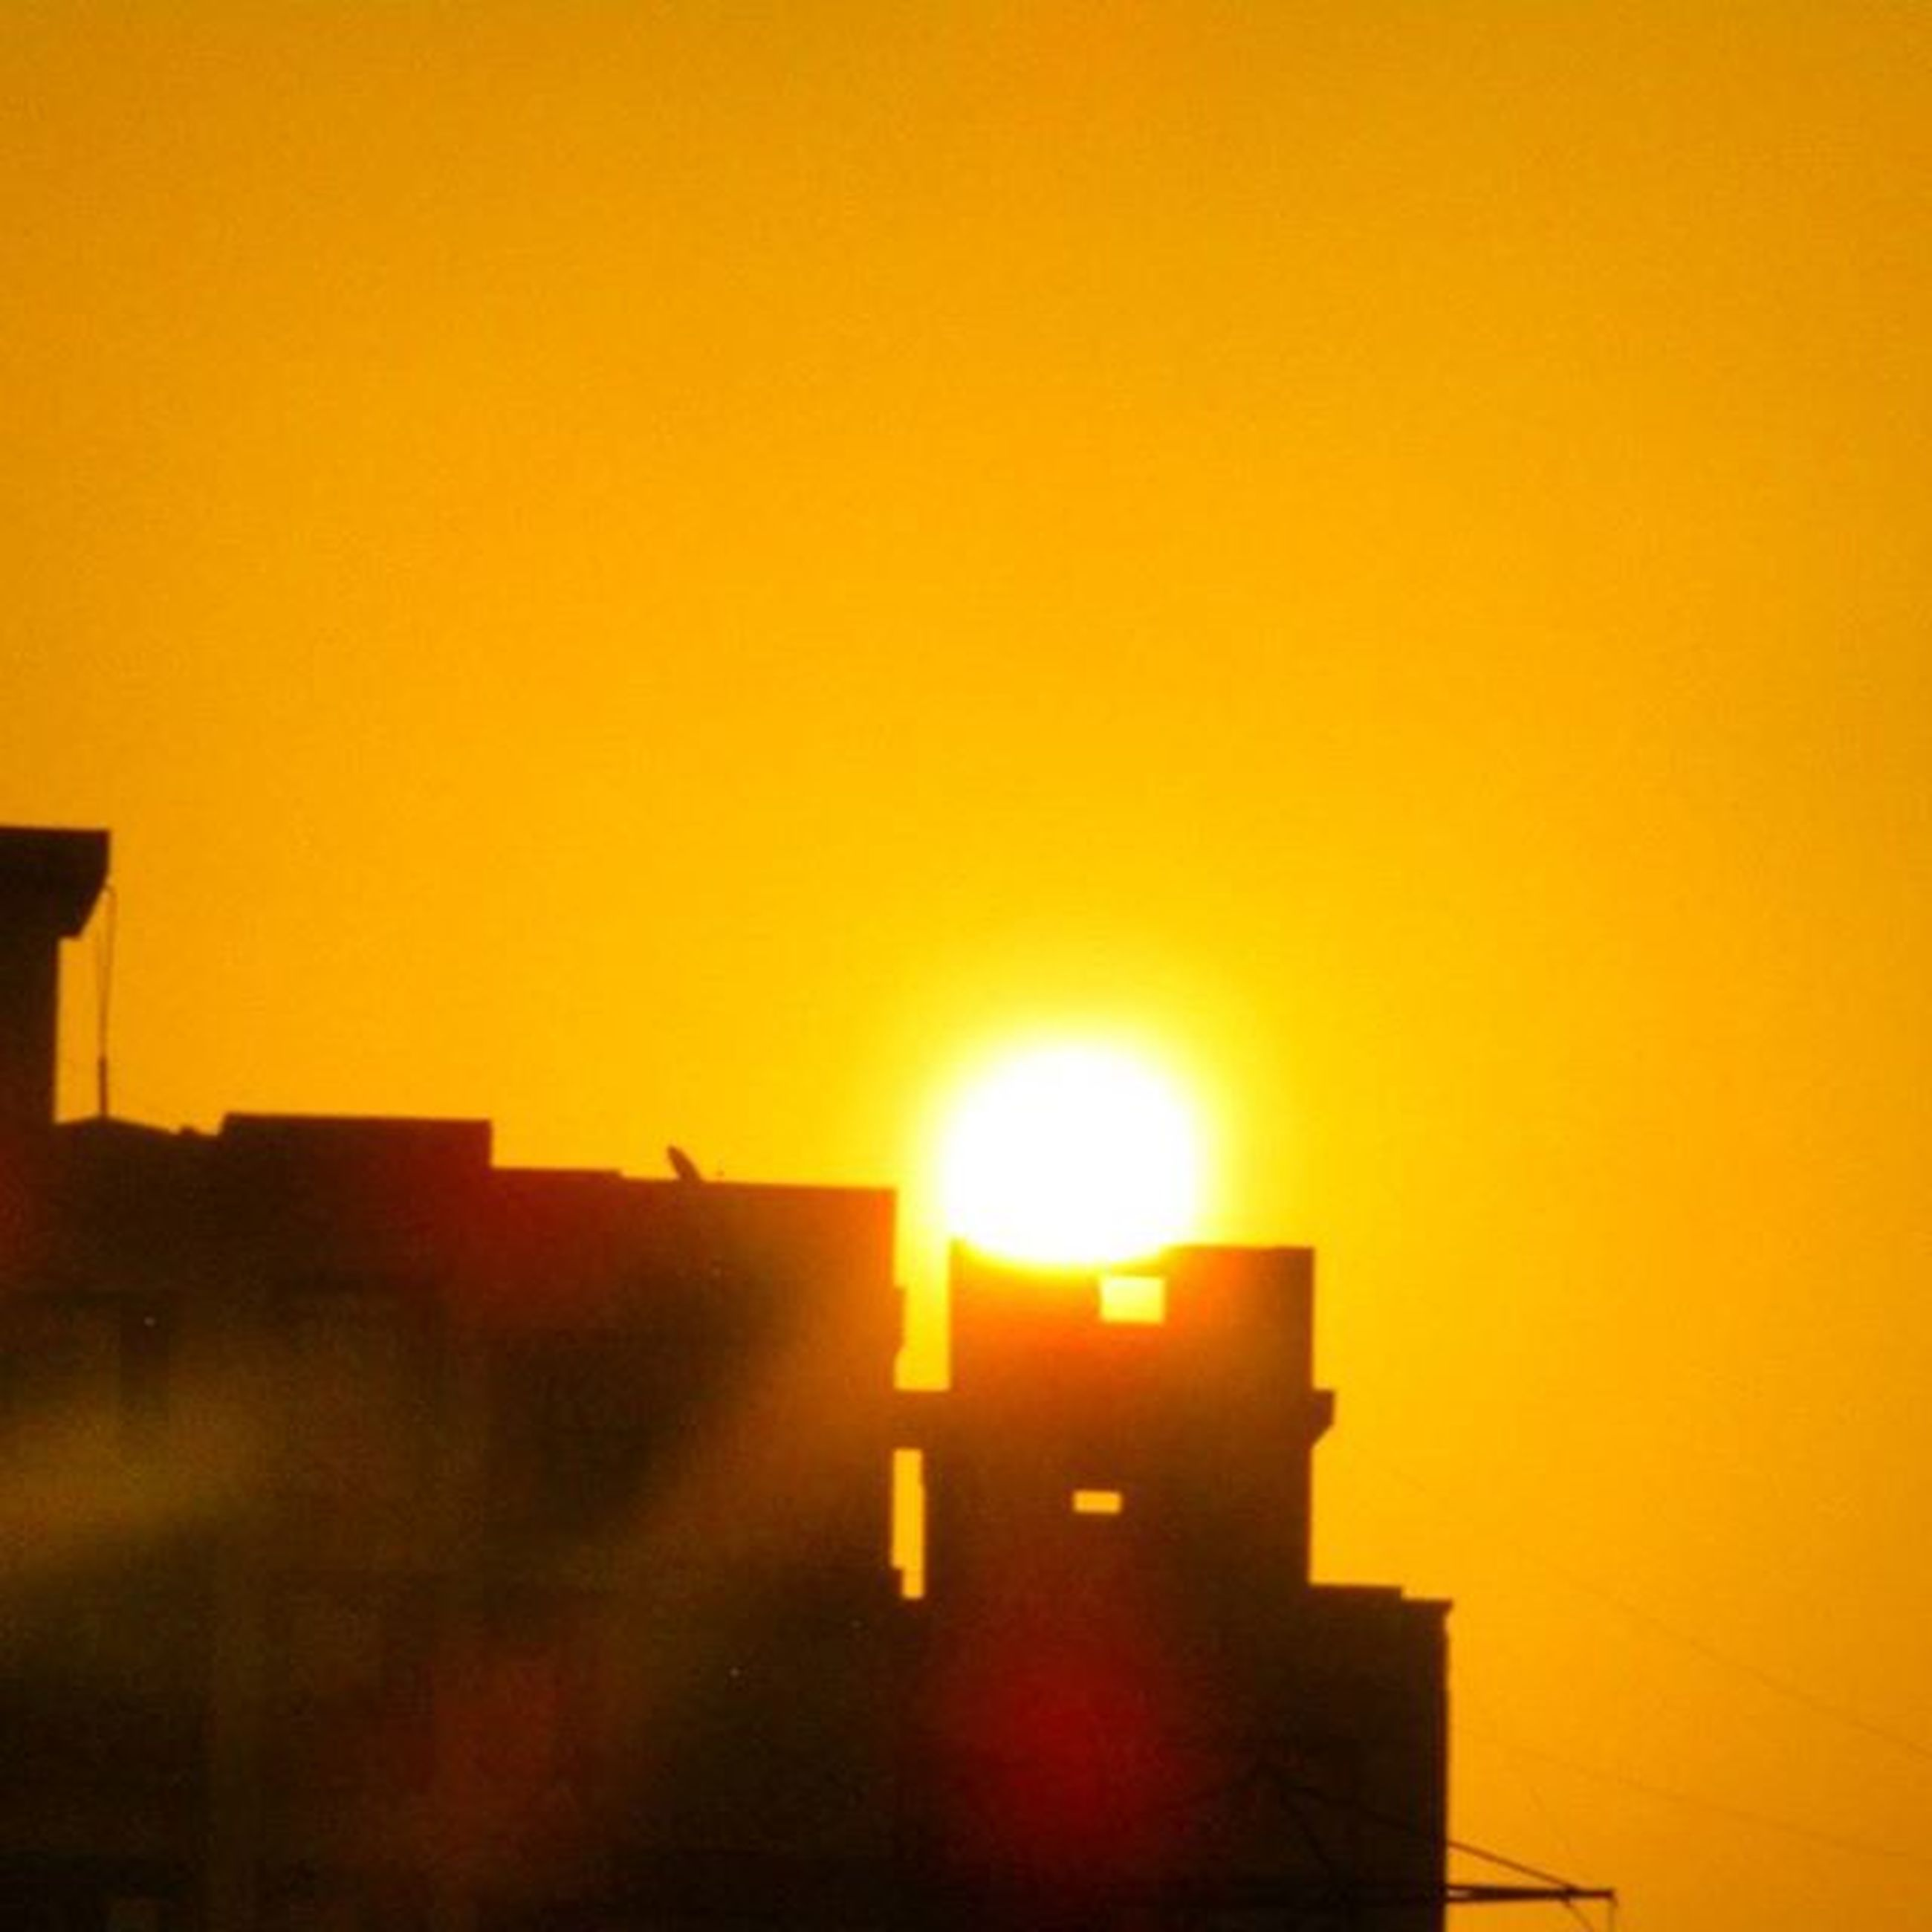 sunset, sun, building exterior, architecture, built structure, orange color, clear sky, copy space, sunlight, city, silhouette, sunbeam, lens flare, building, bright, residential building, outdoors, residential structure, no people, low angle view